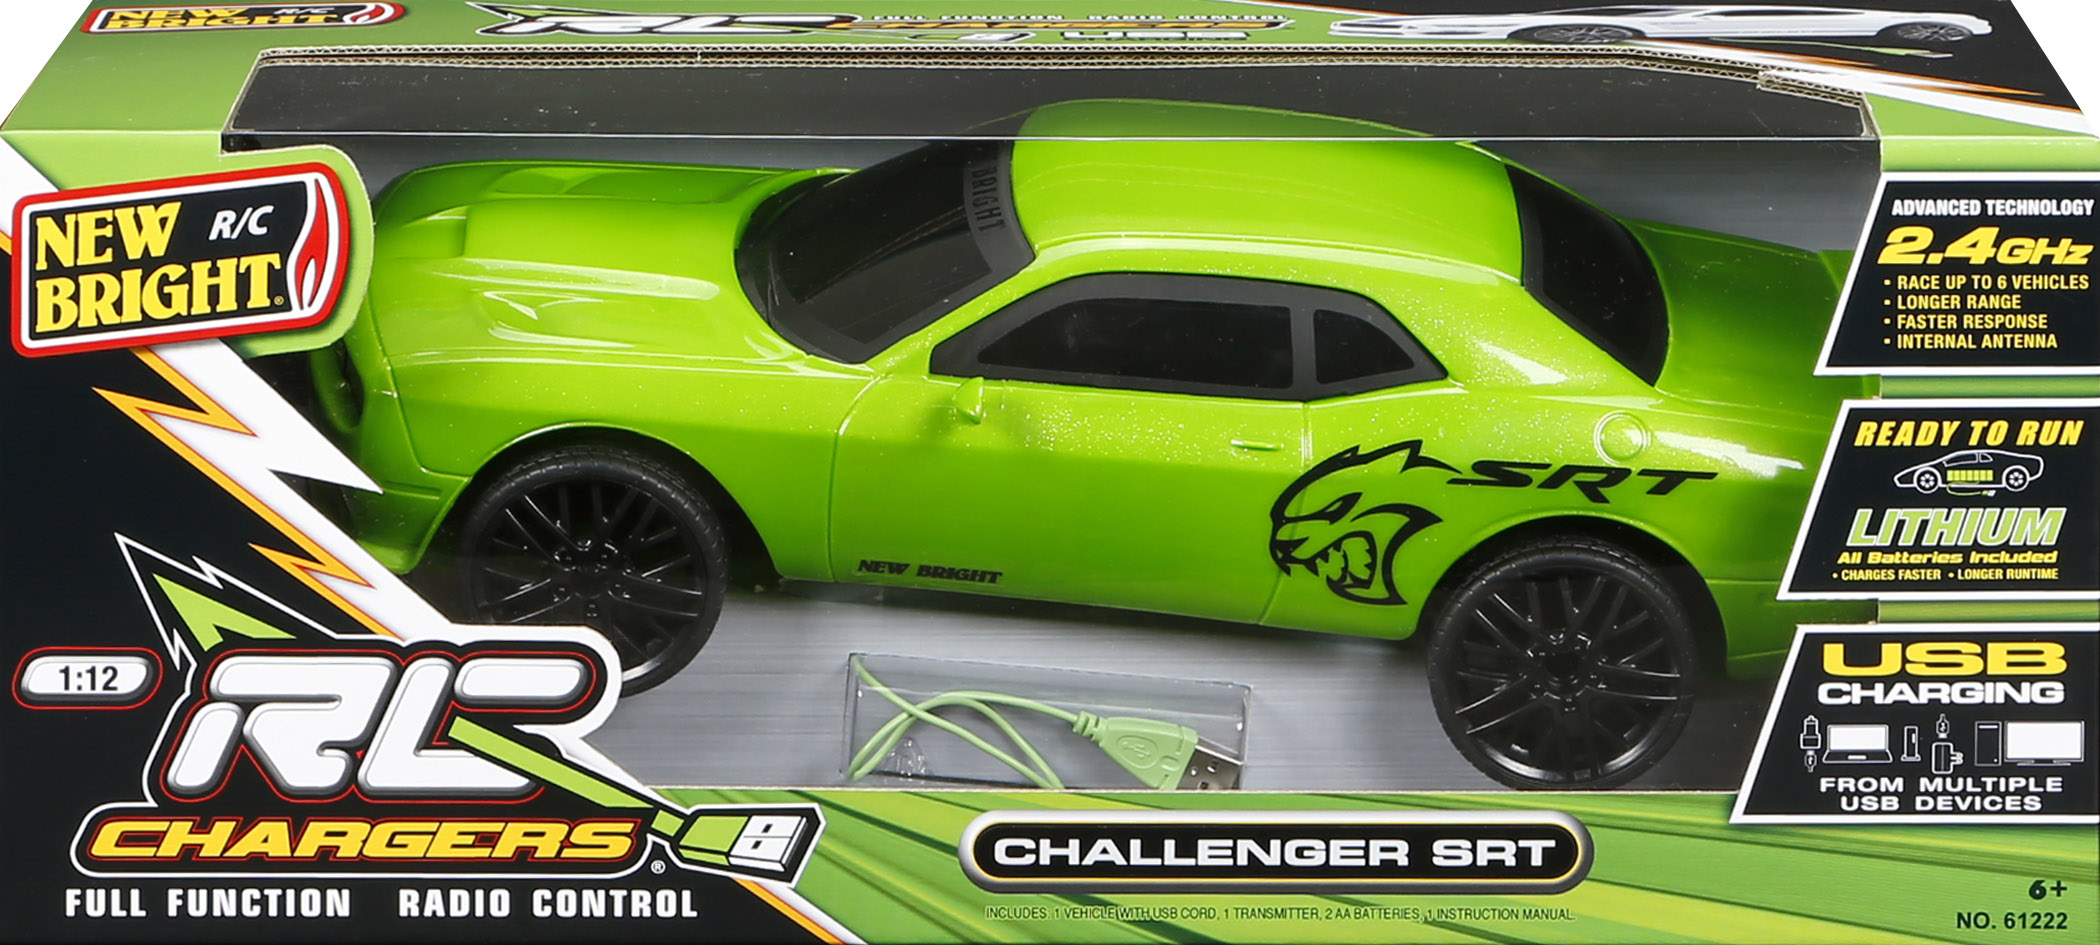 New Bright 1 12 Rc Chargers Challenger Srt Remote Control Car